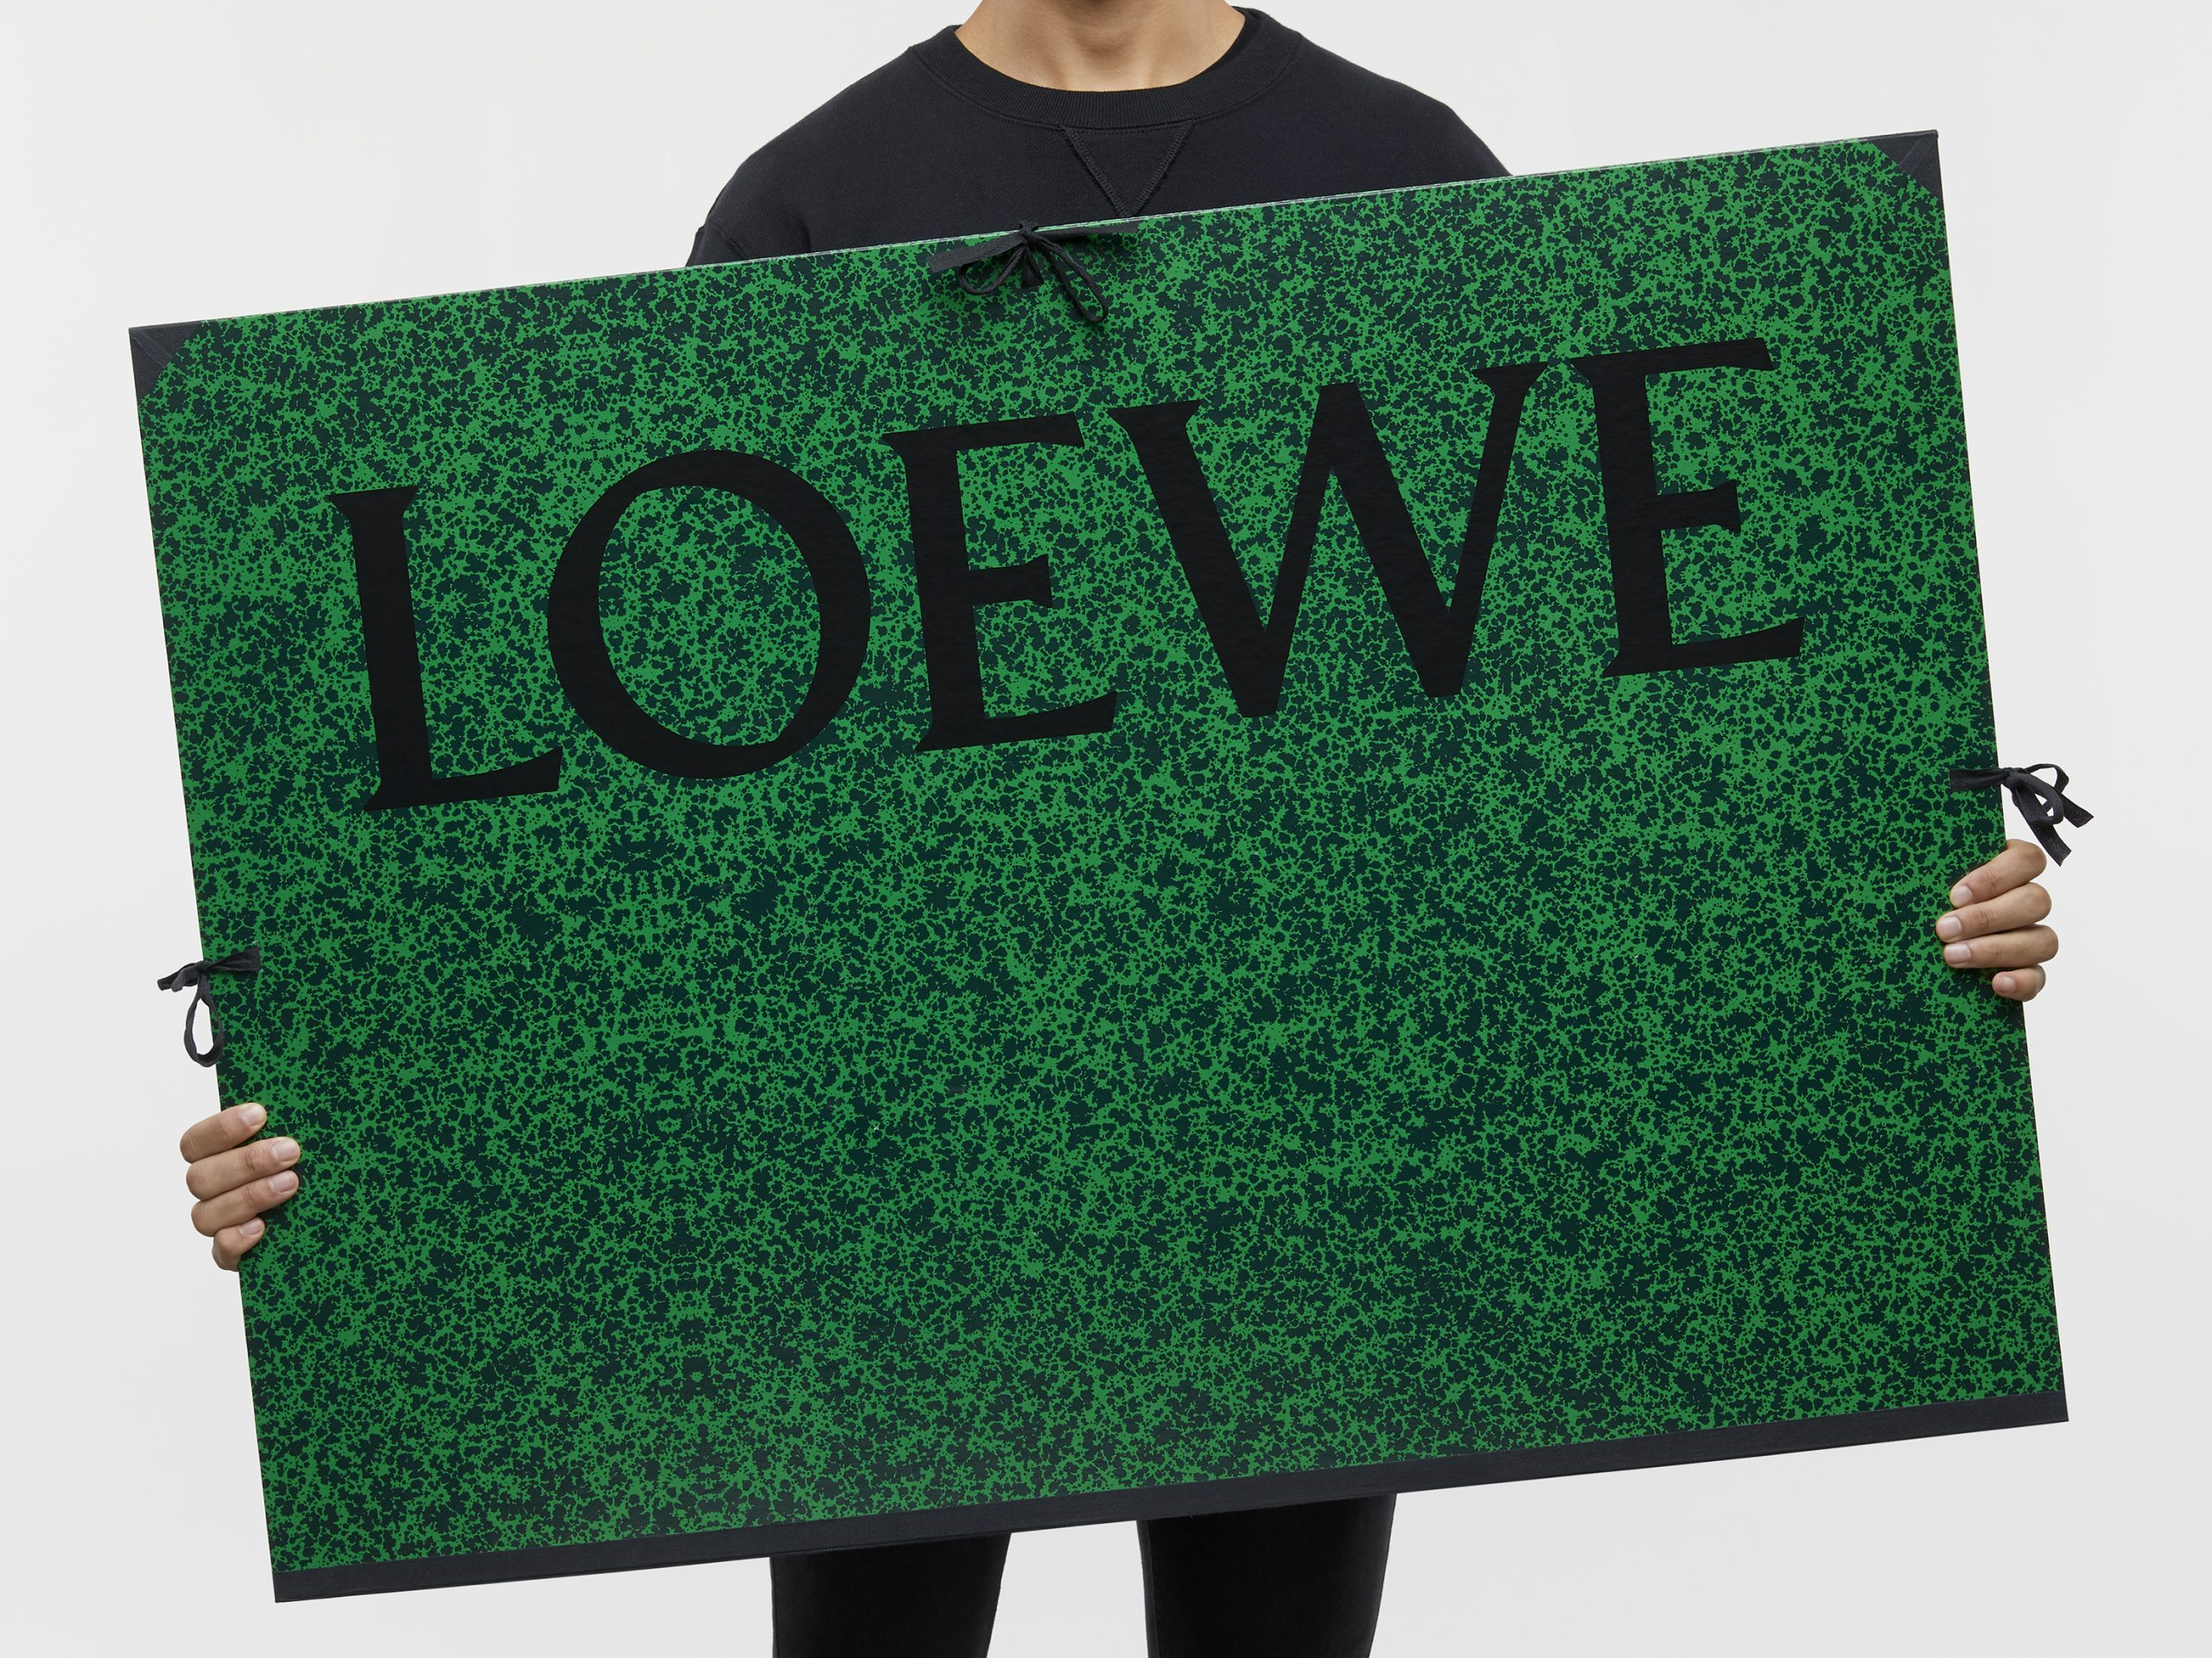 Loewe Spring 2021 Fashion Show 'Show on the Wall' Box Kit